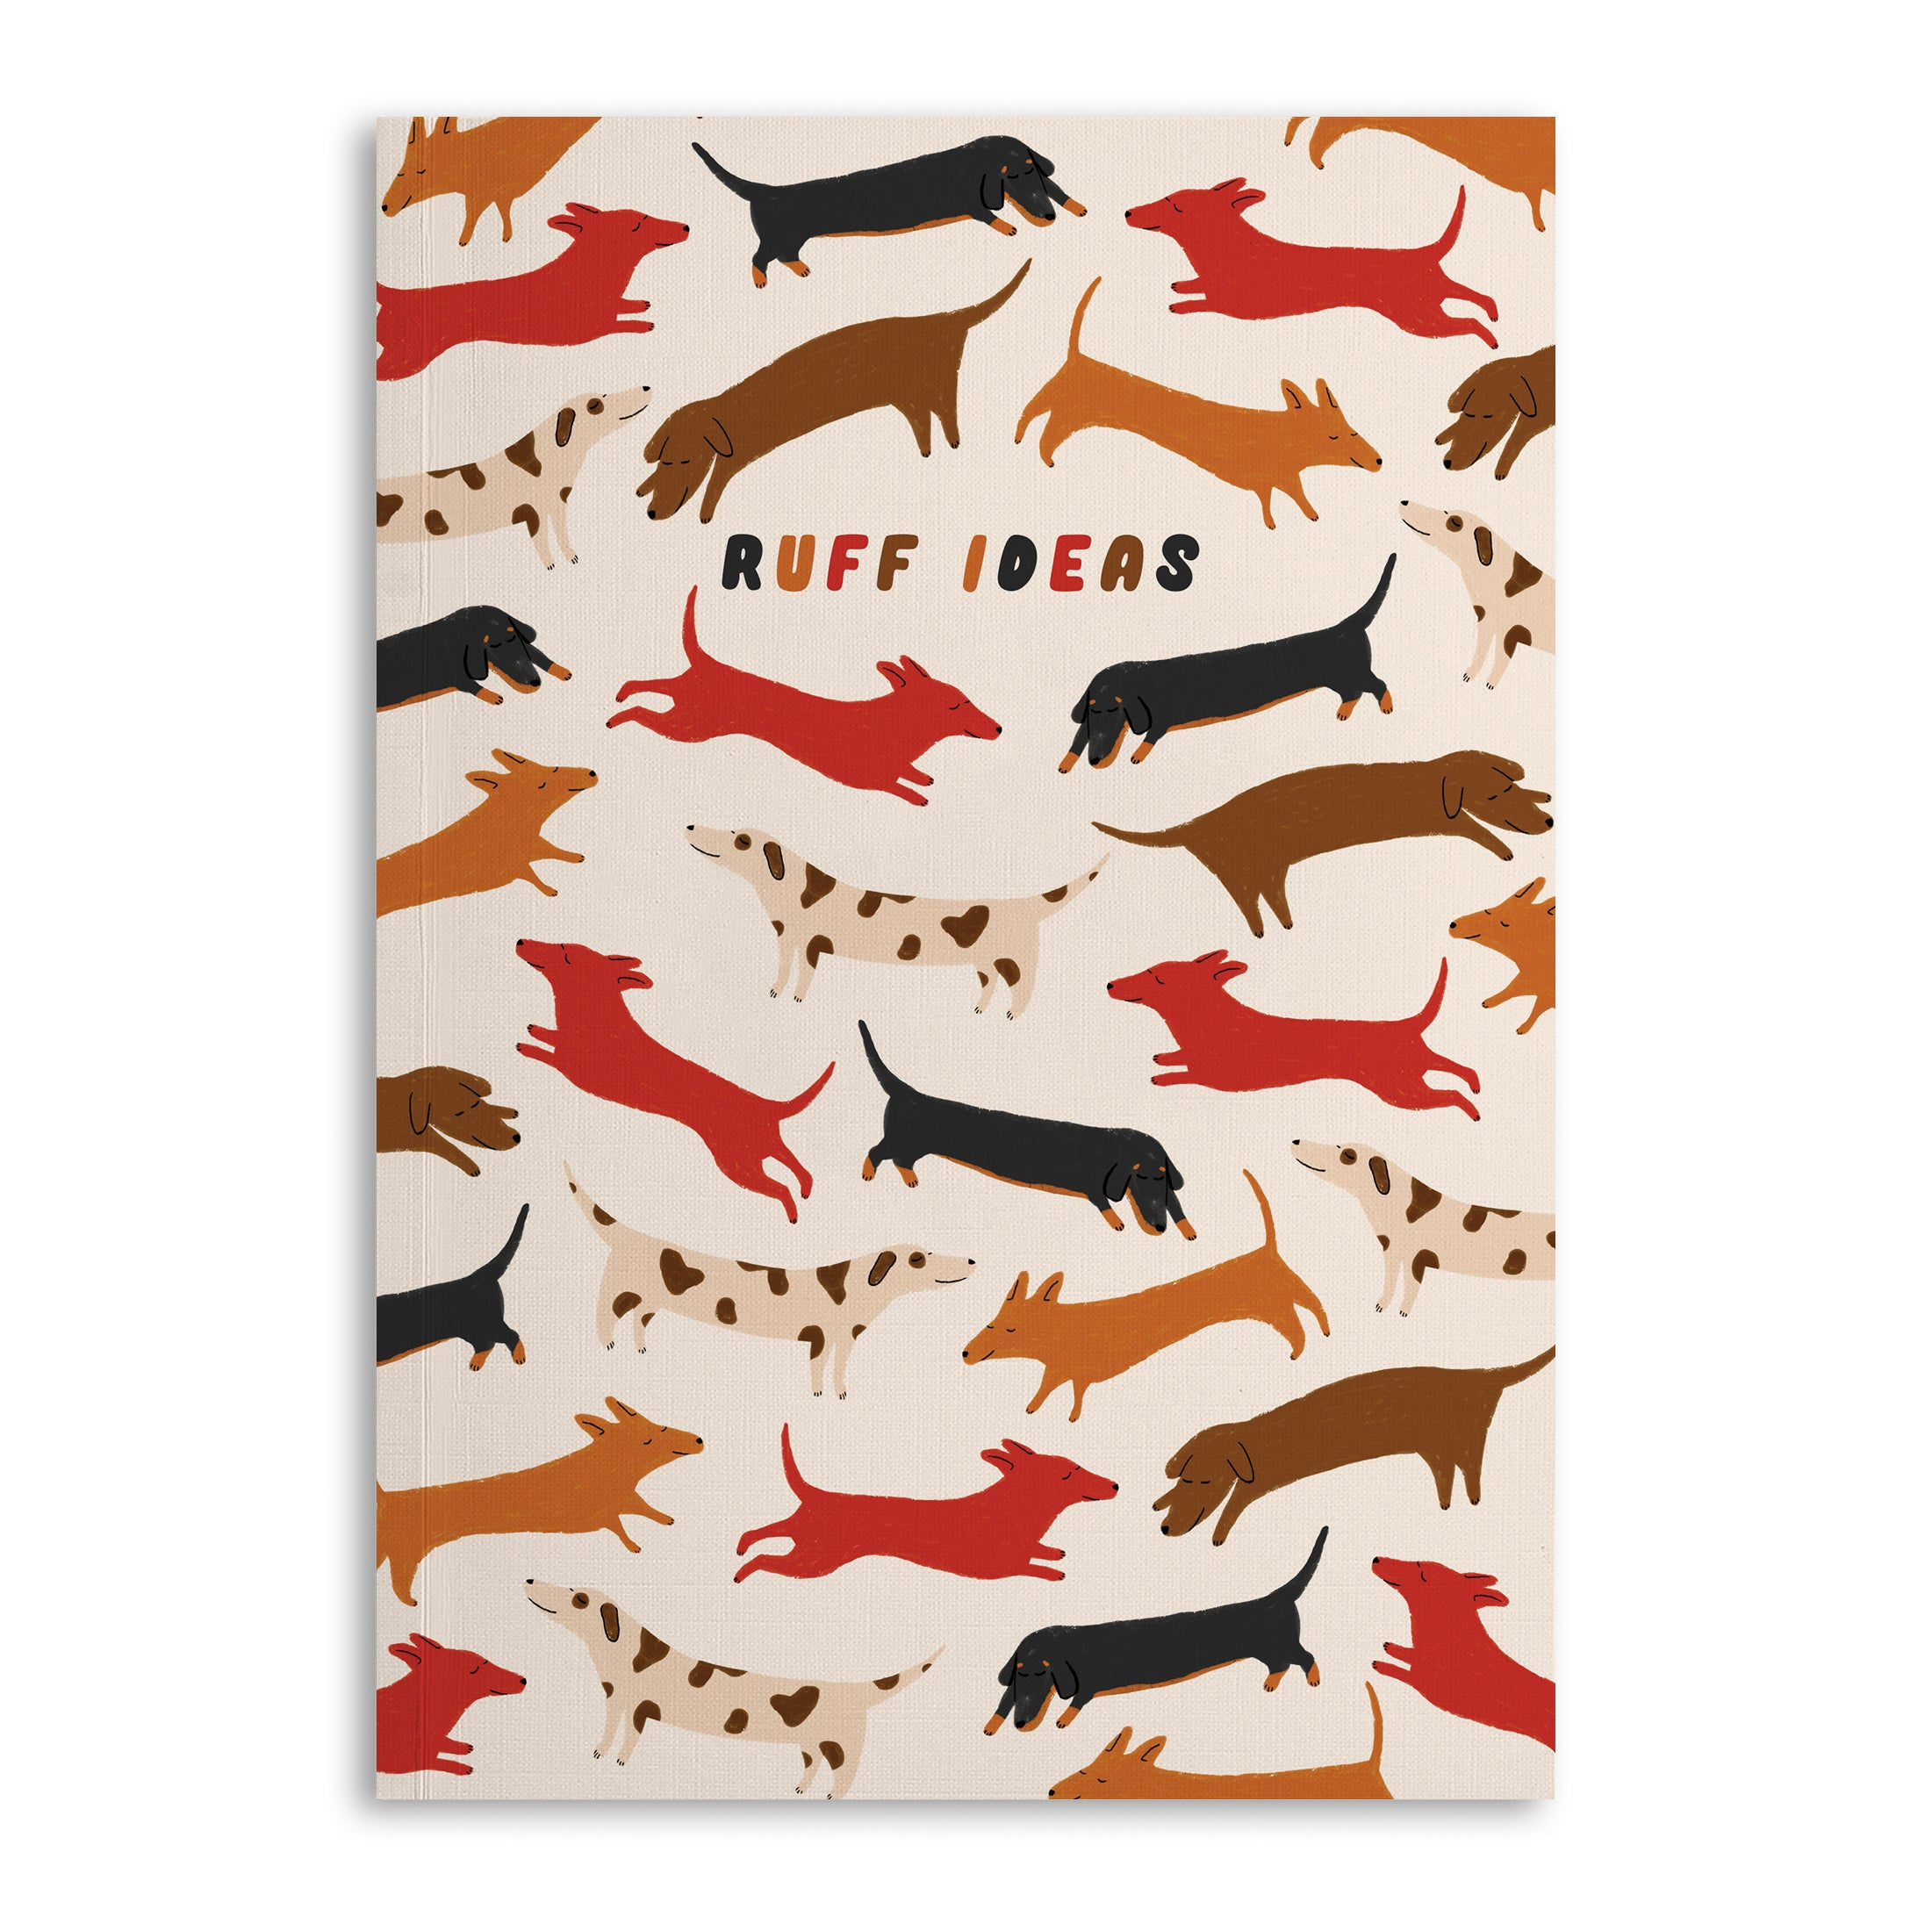 Ruff Ideas A5 Lined Notebook (120 Pages)